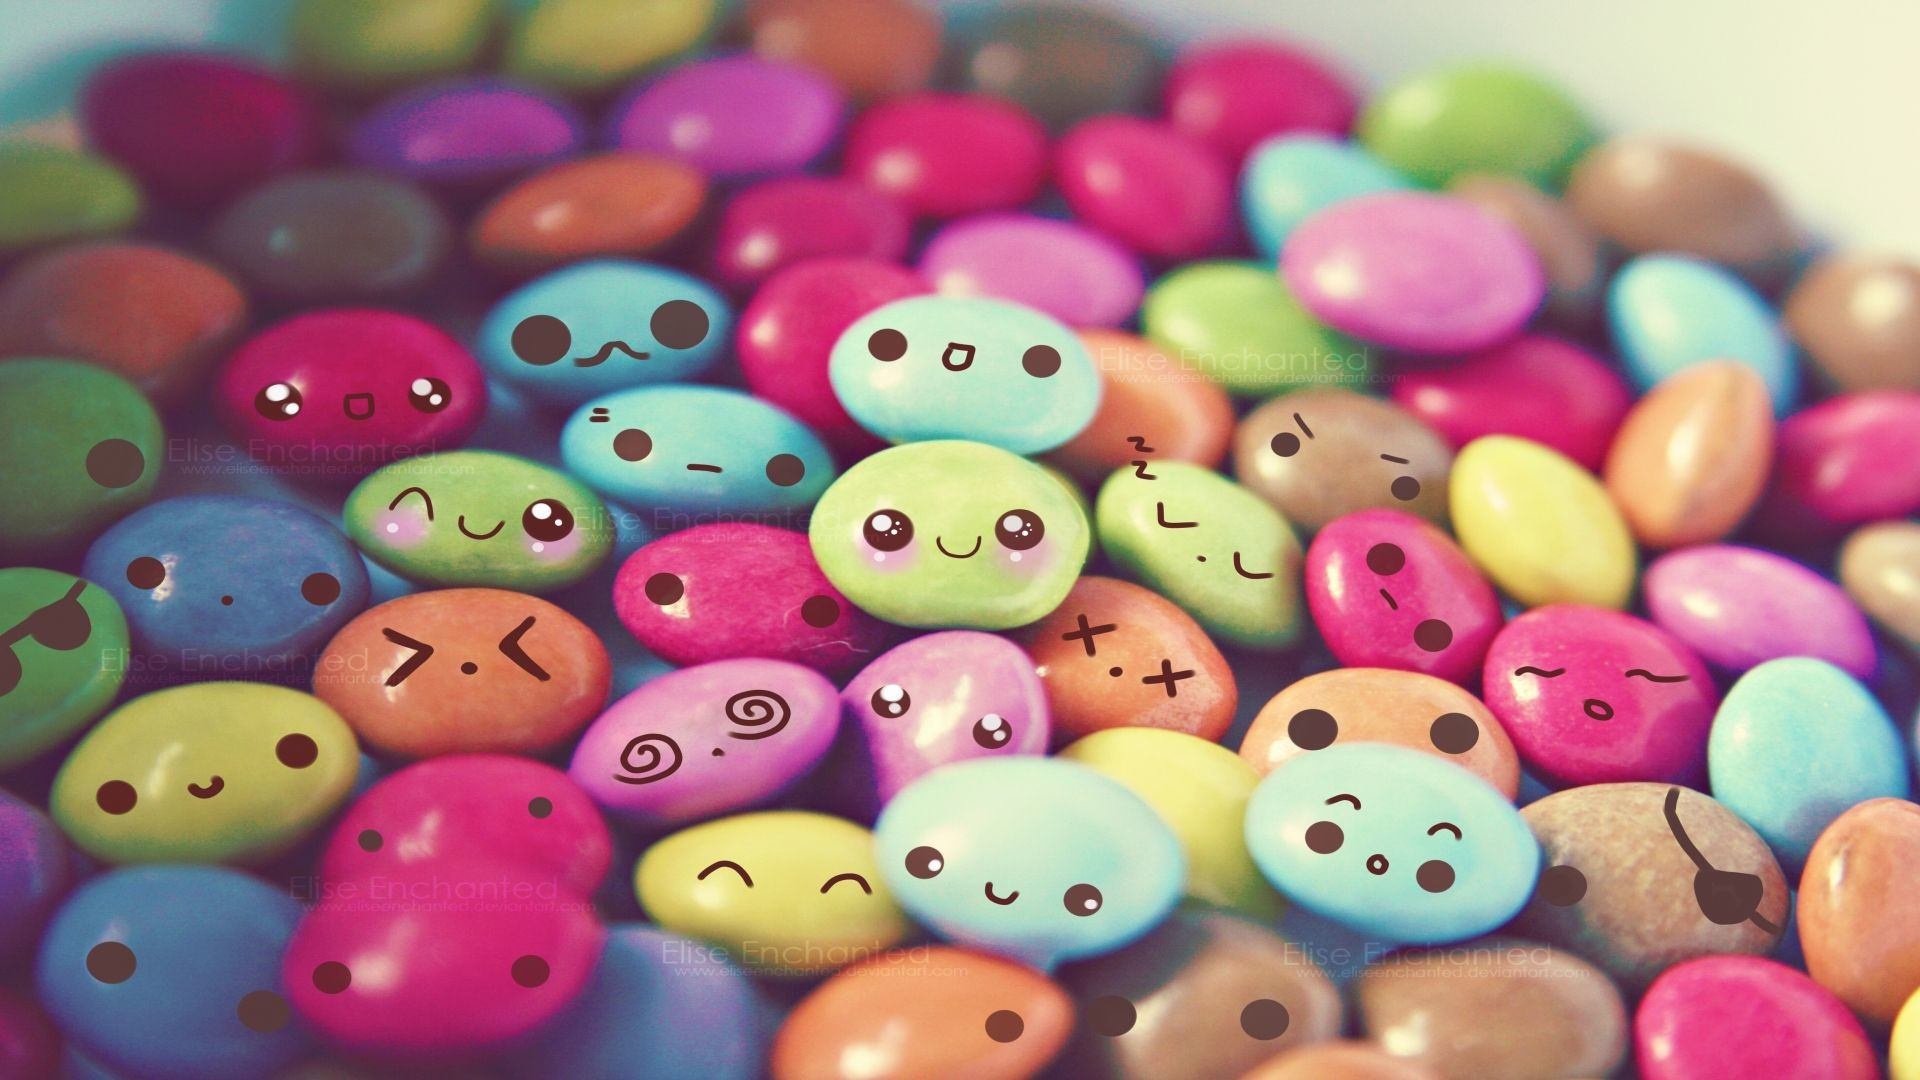 Cute HD Images – HD Wallpapers Backgrounds of Your Choice